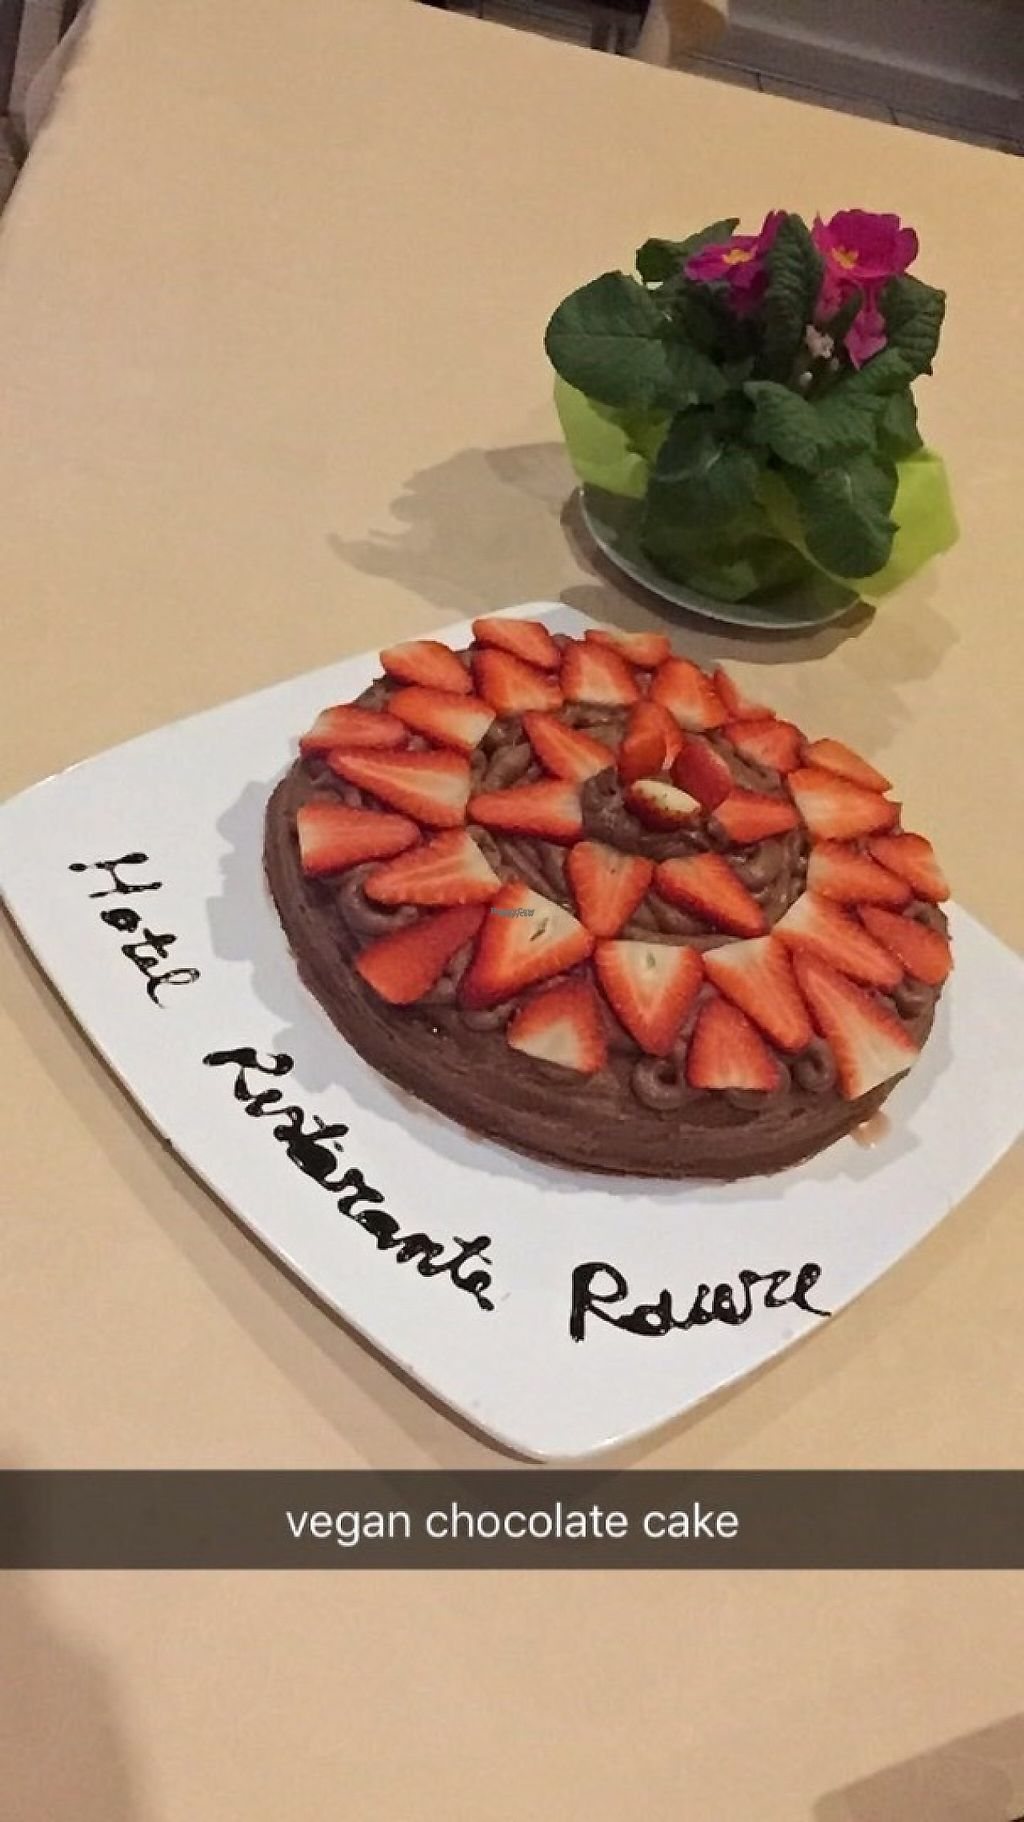 """Photo of Hotel Rovere  by <a href=""""/members/profile/ssarad"""">ssarad</a> <br/>Vegan chocolate cake <br/> March 5, 2017  - <a href='/contact/abuse/image/88052/233119'>Report</a>"""